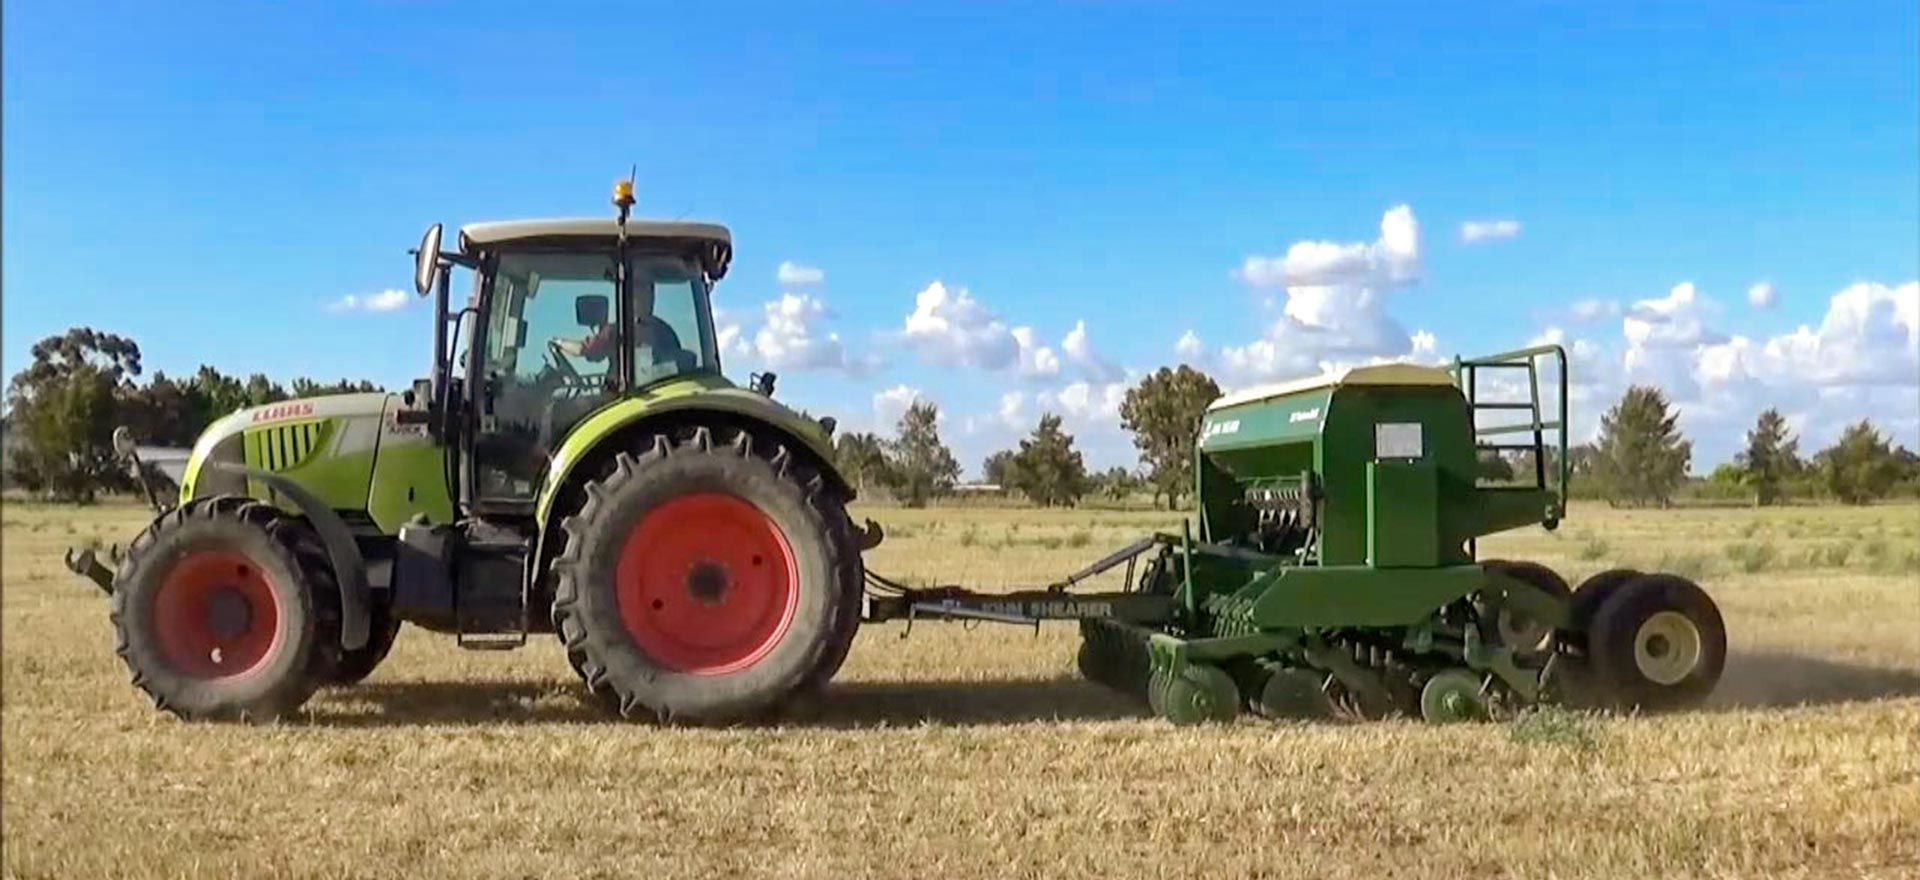 3.5m Pasture Drill towed by a Claas tractor